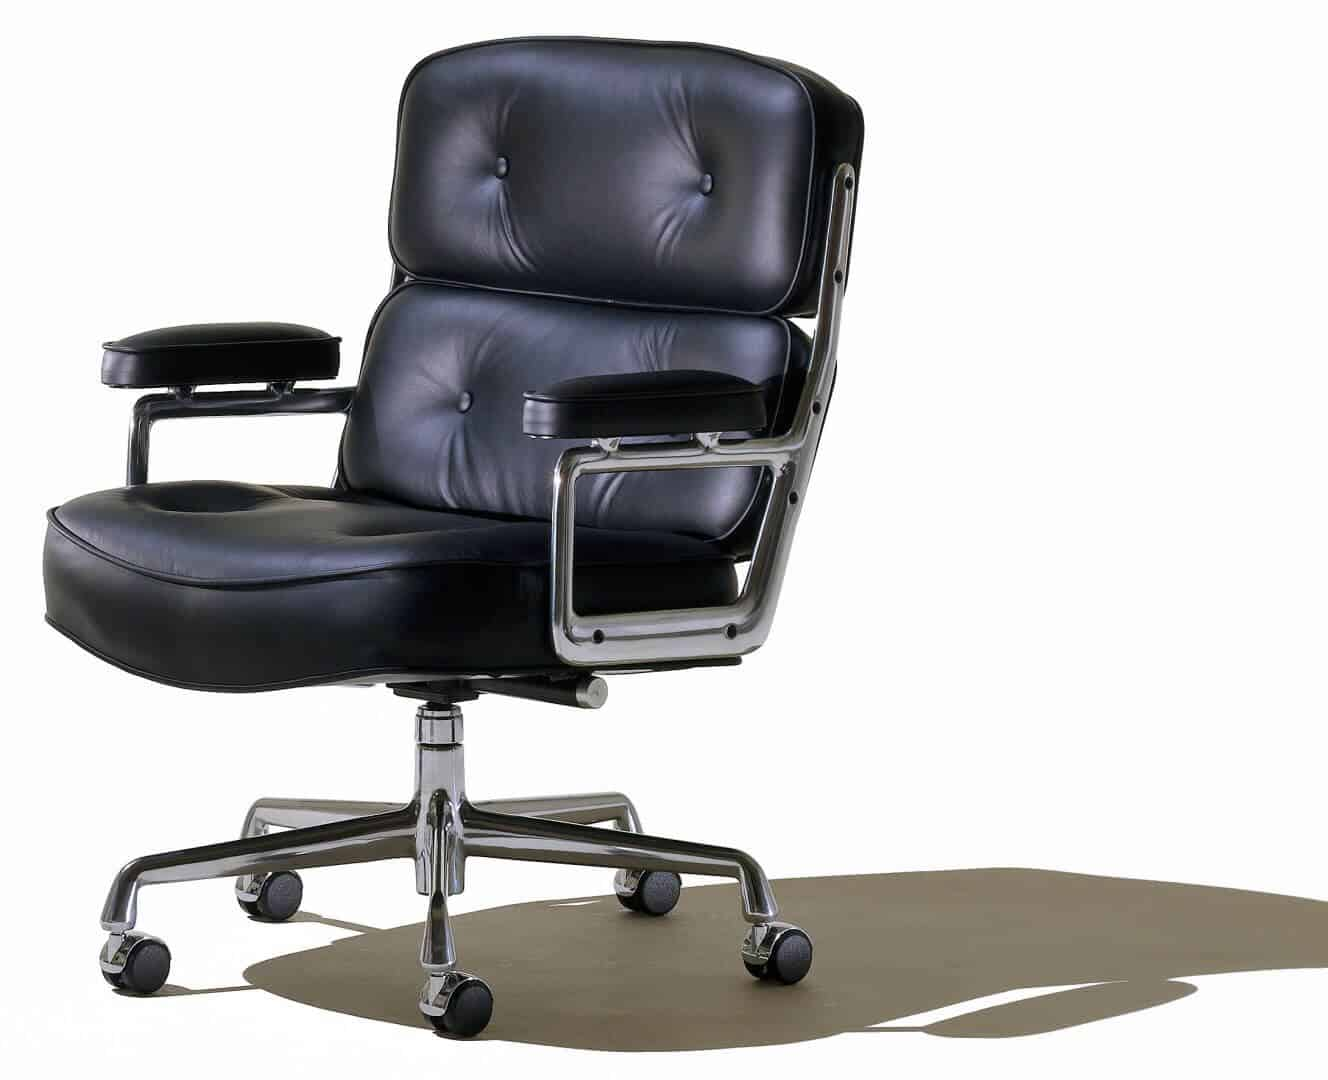 office desk chairs armless chair guide and how to buy a 43 top 10